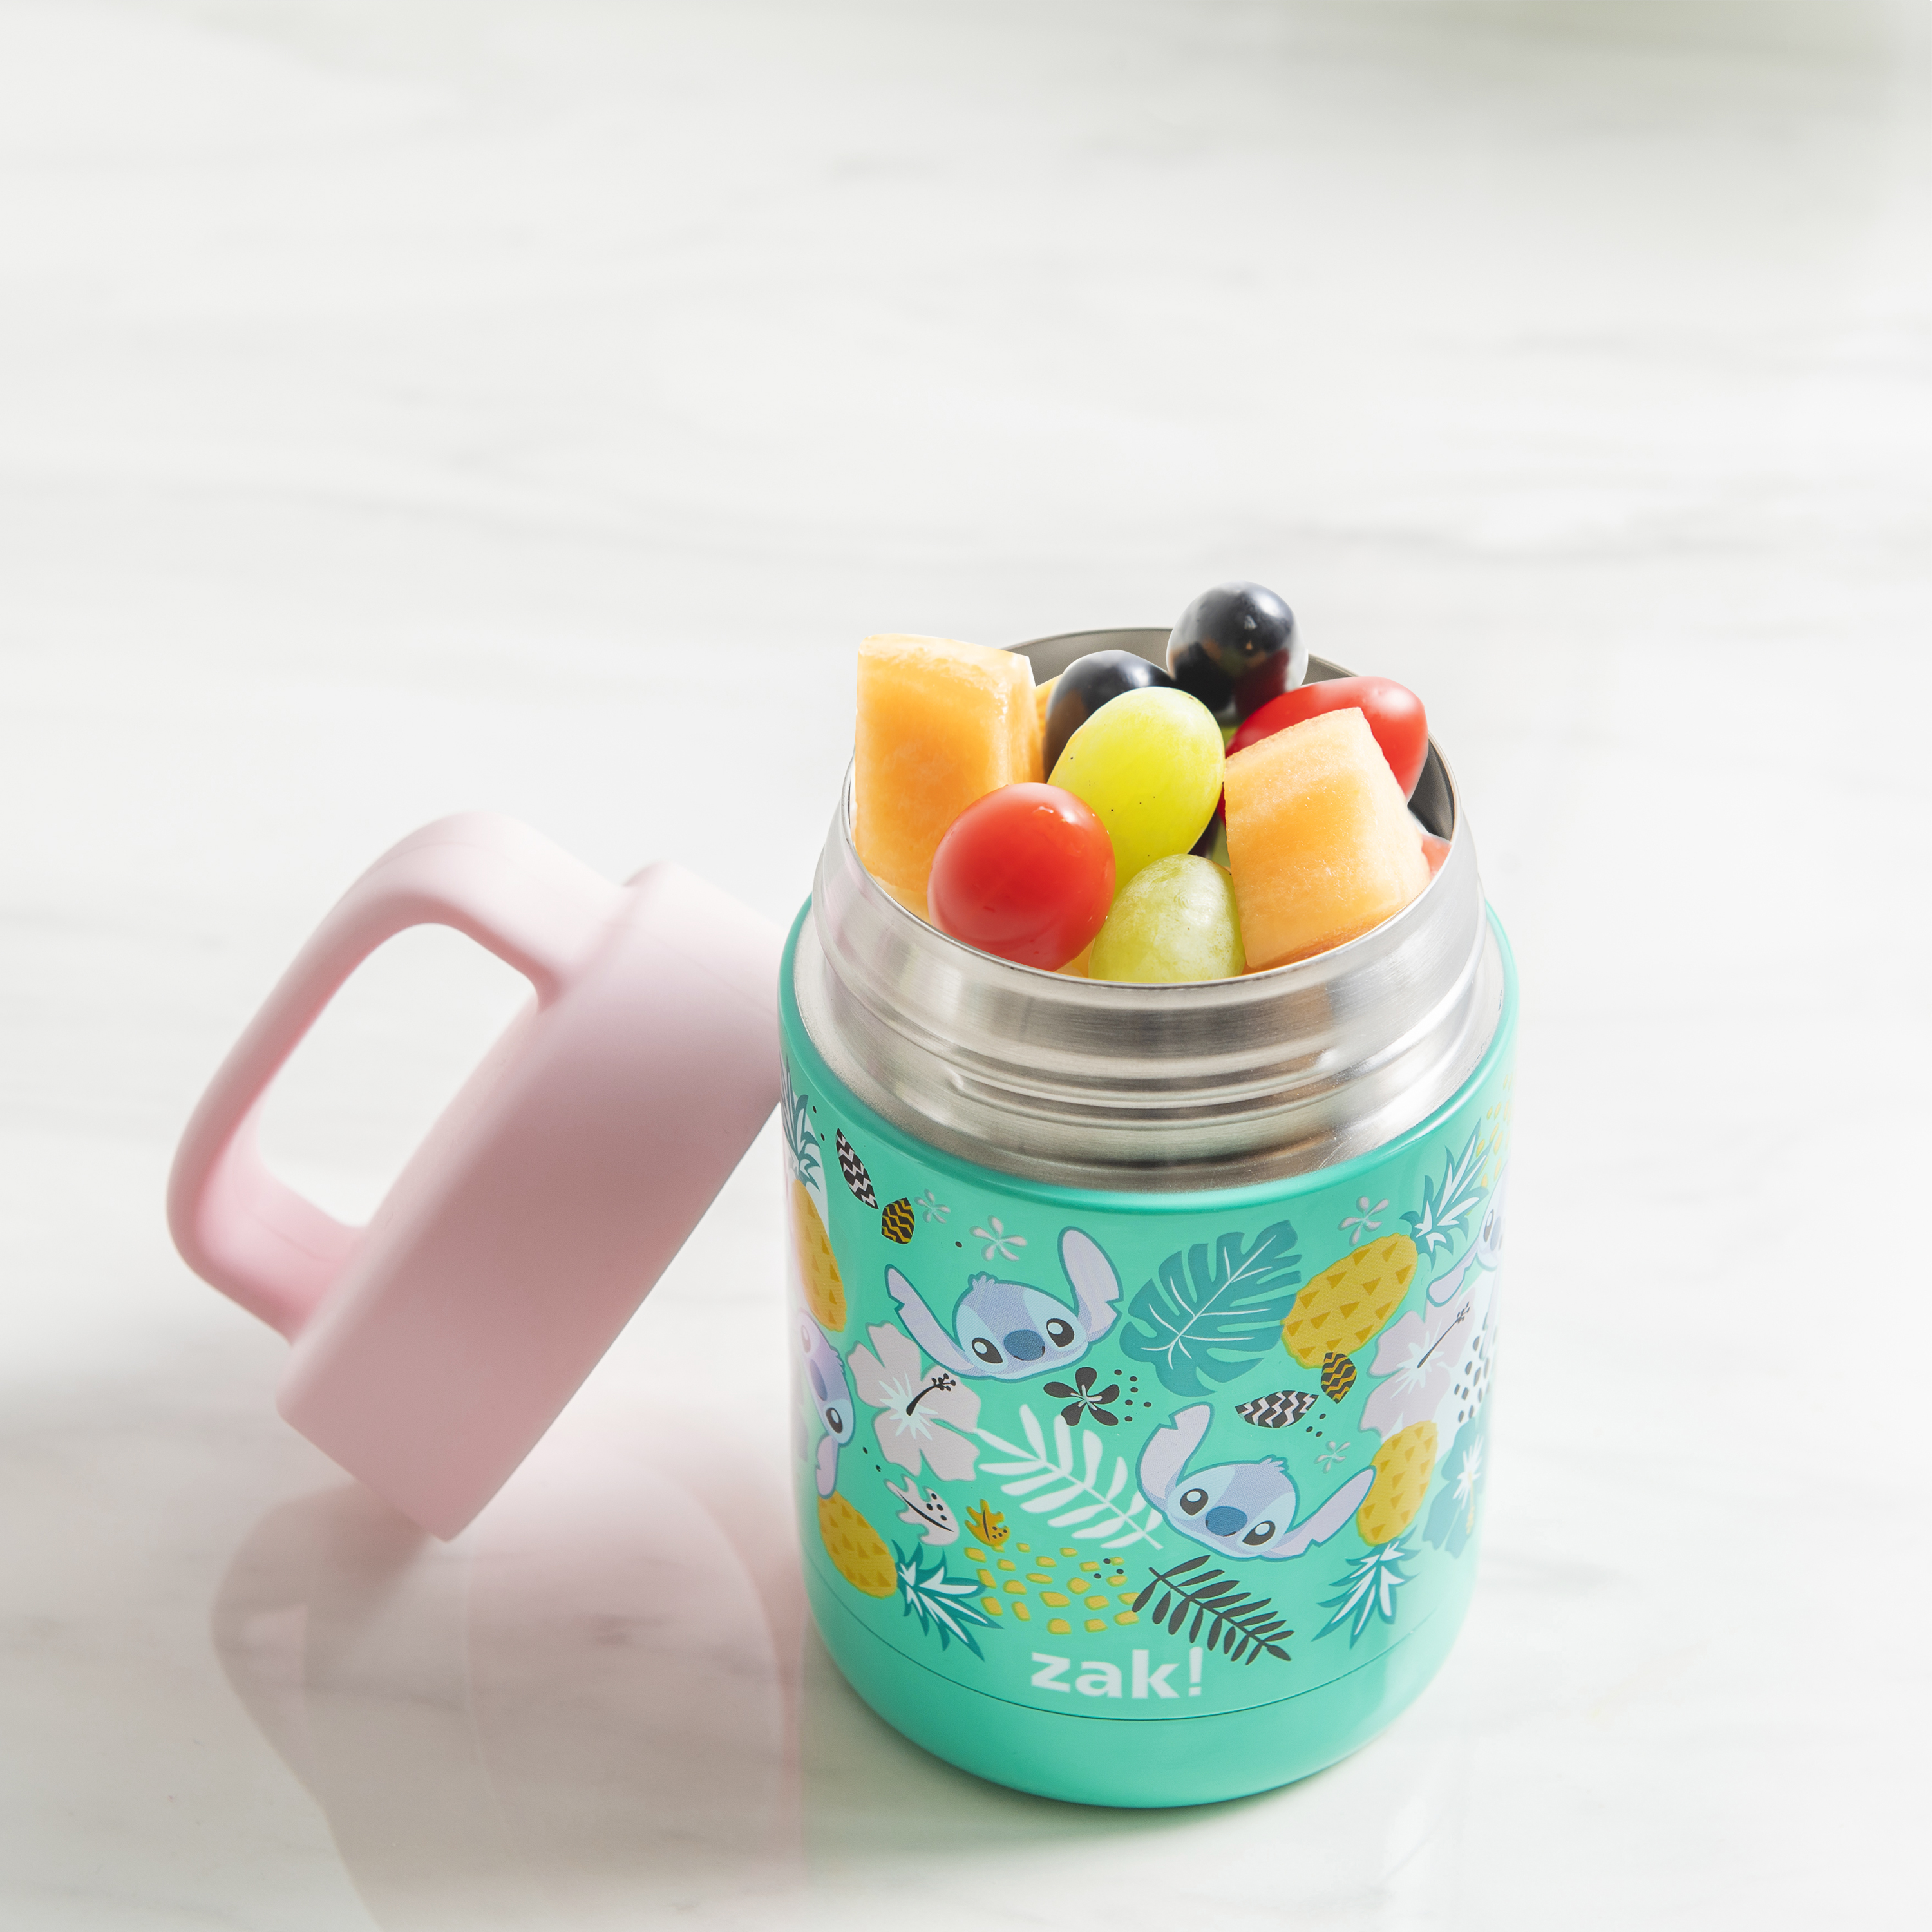 Disney Reusable Vacuum Insulated Stainless Steel Food Container, Lilo & Stitch slideshow image 9